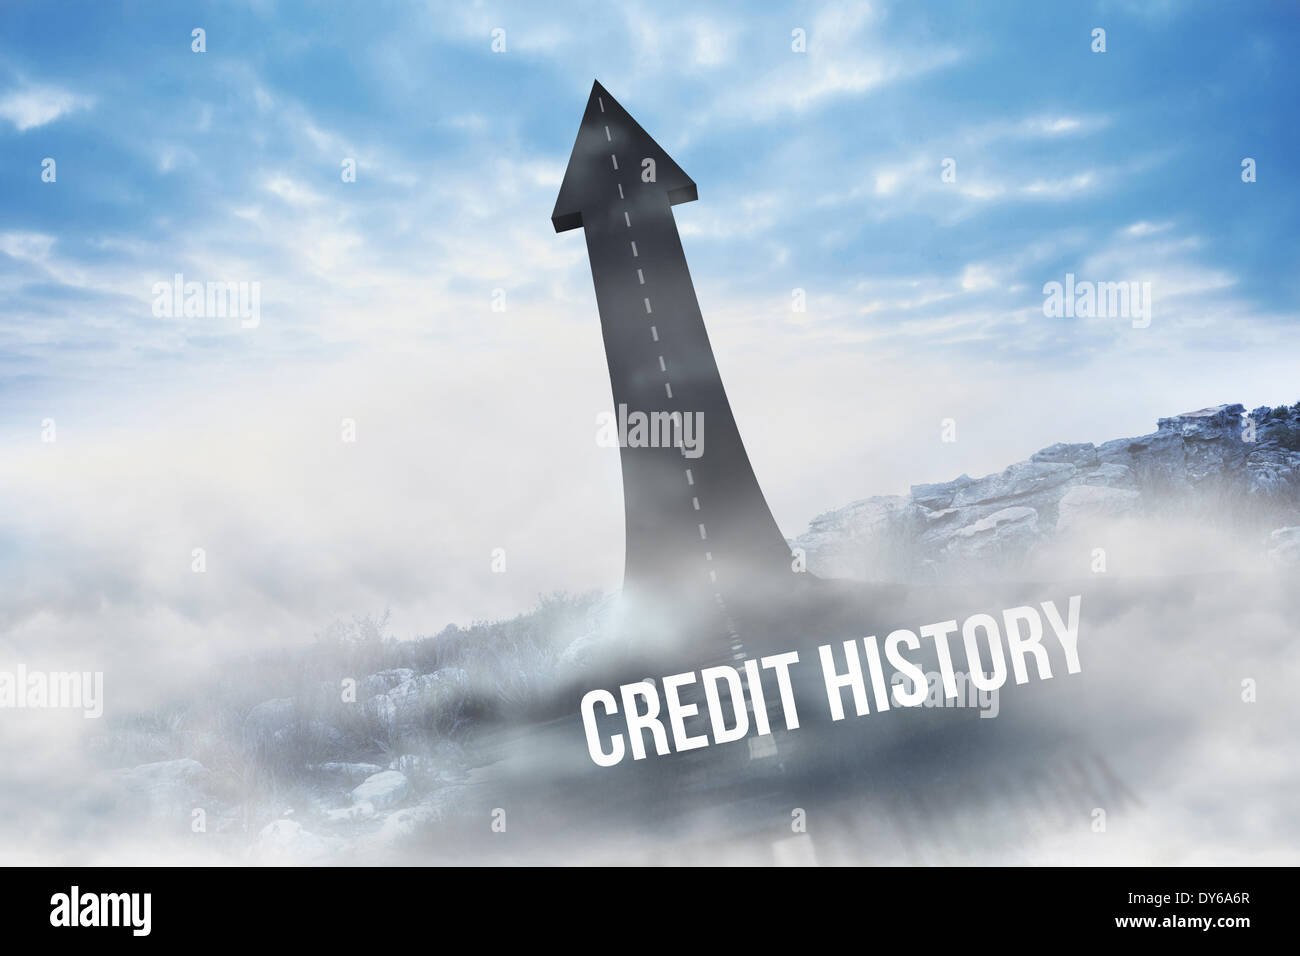 Credit history against road turning into arrow - Stock Image